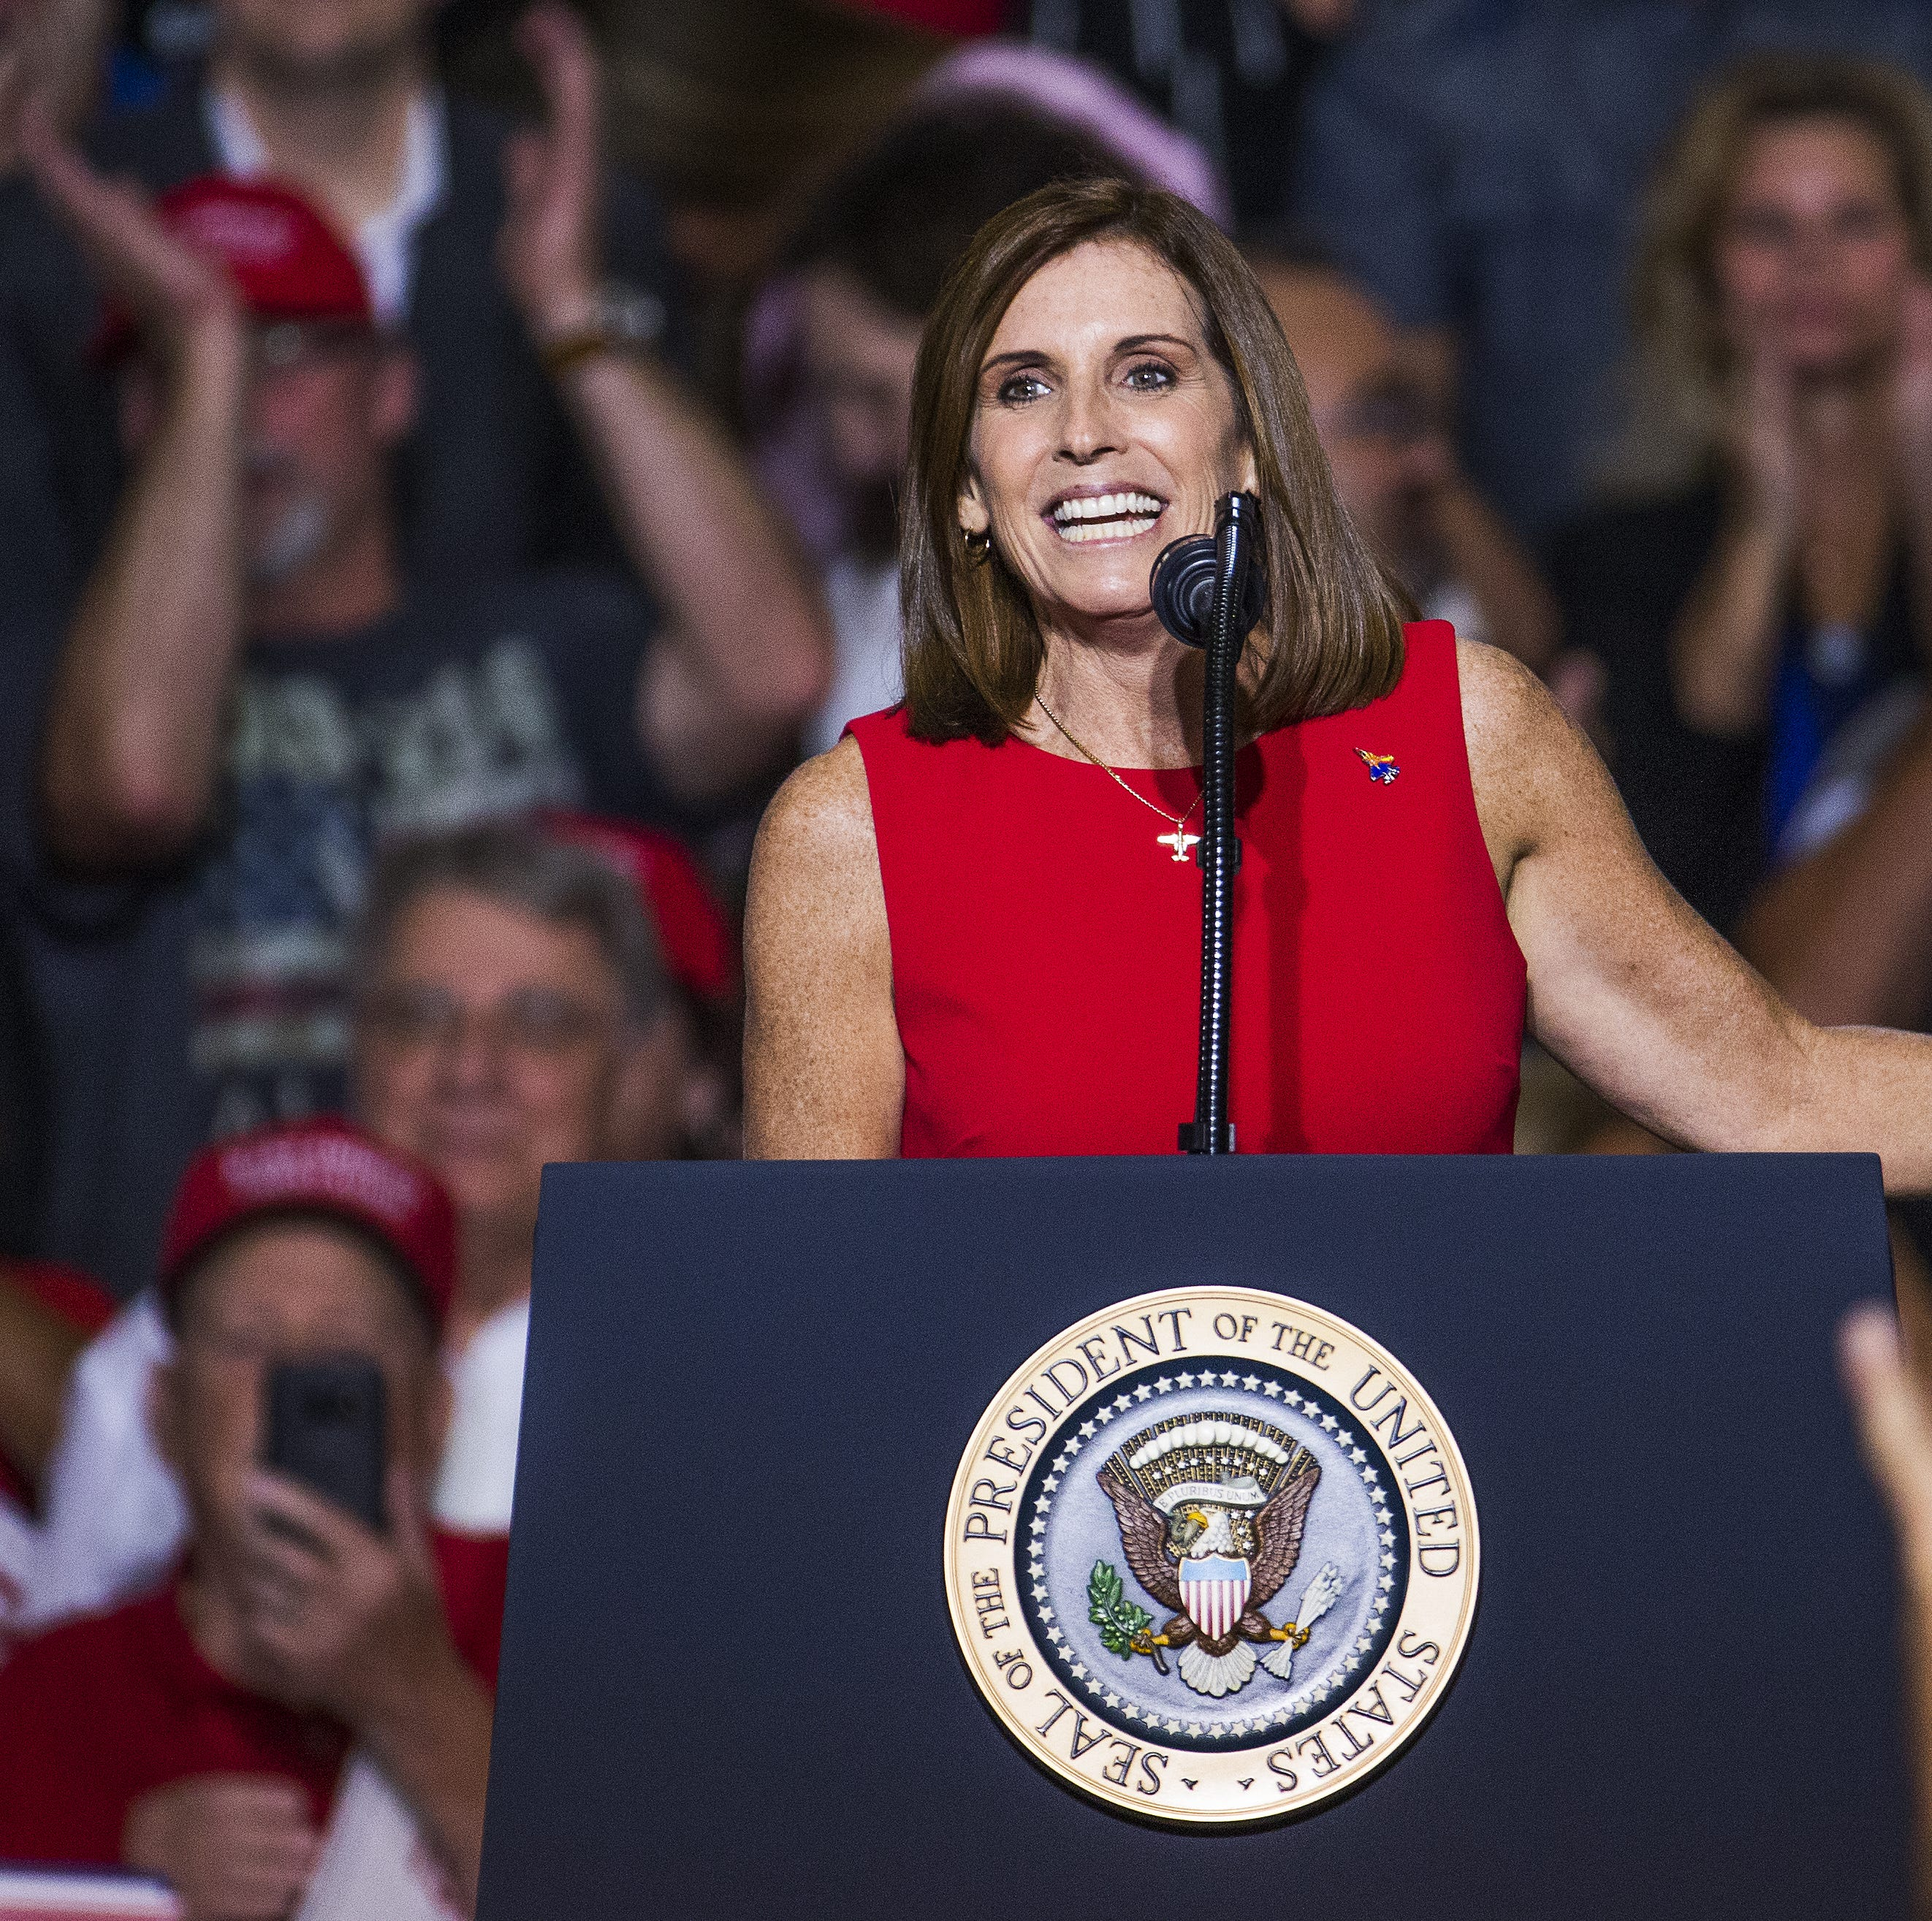 At Mesa rally, President Donald Trump talks up Martha McSally for the Senate